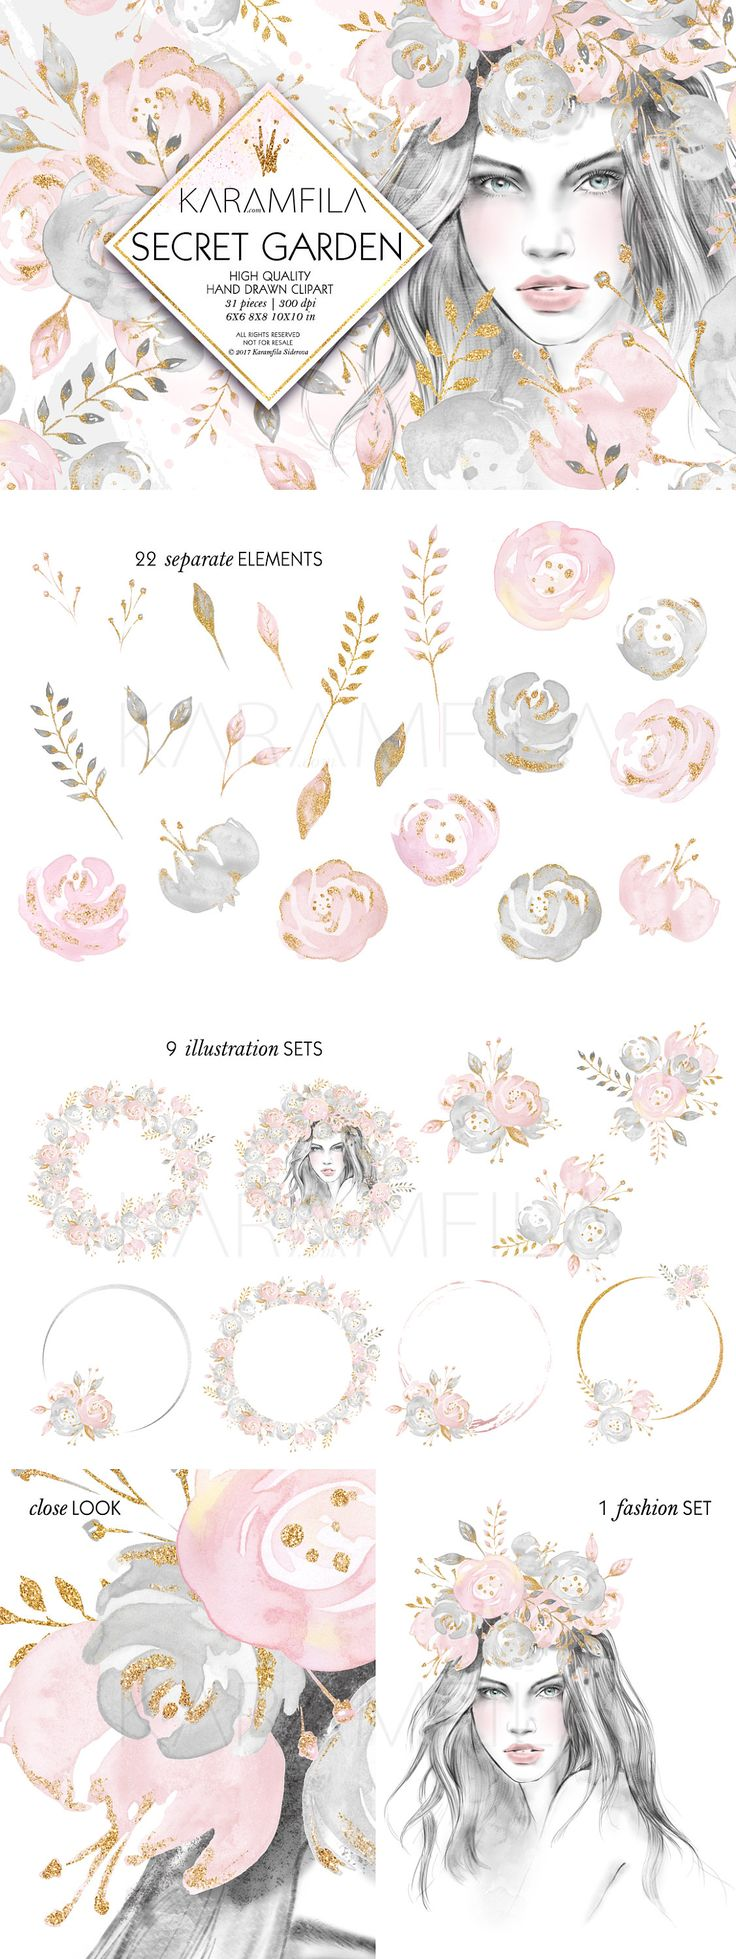 Wedding flowers clipart with blush and gold peonies, watercolor fashion illustrations clip art. Matching digital paper packs: * Secret Garden - www.etsy.com/listing/521099351 * Blush Wedding - www.etsy.com/listing/507292266 ---------------------------- Digital item, no physical items